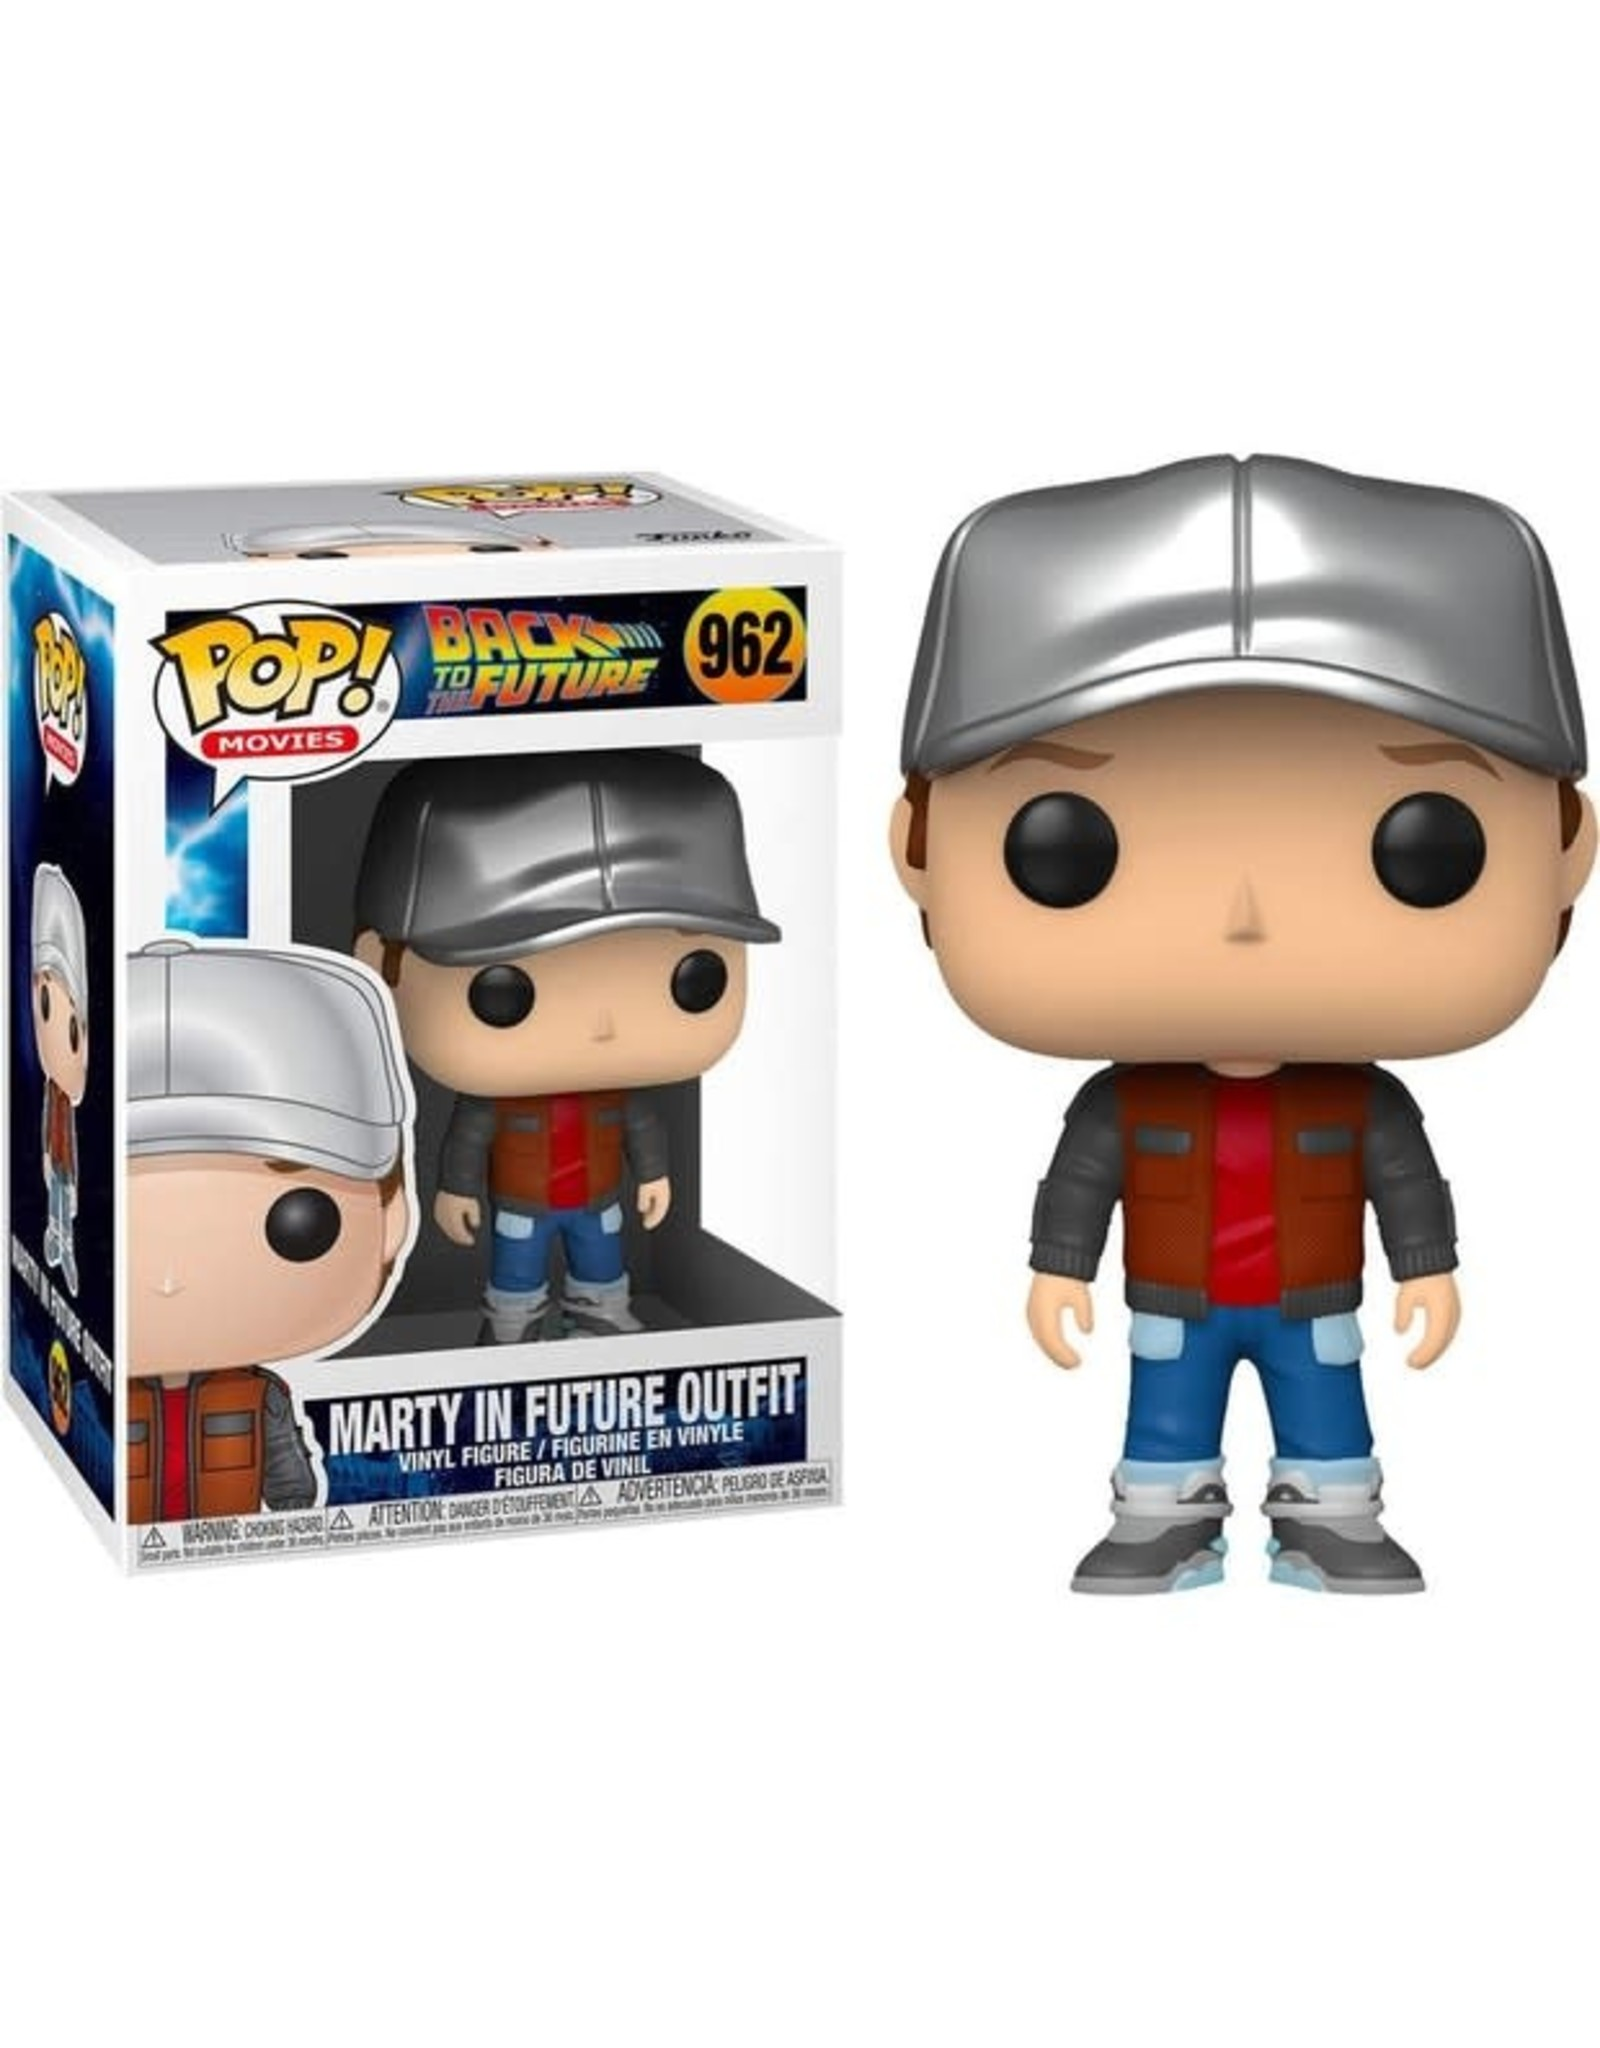 Funko BACK TO THE FUTURE POP! N° 962 - Marty in Future Outfit